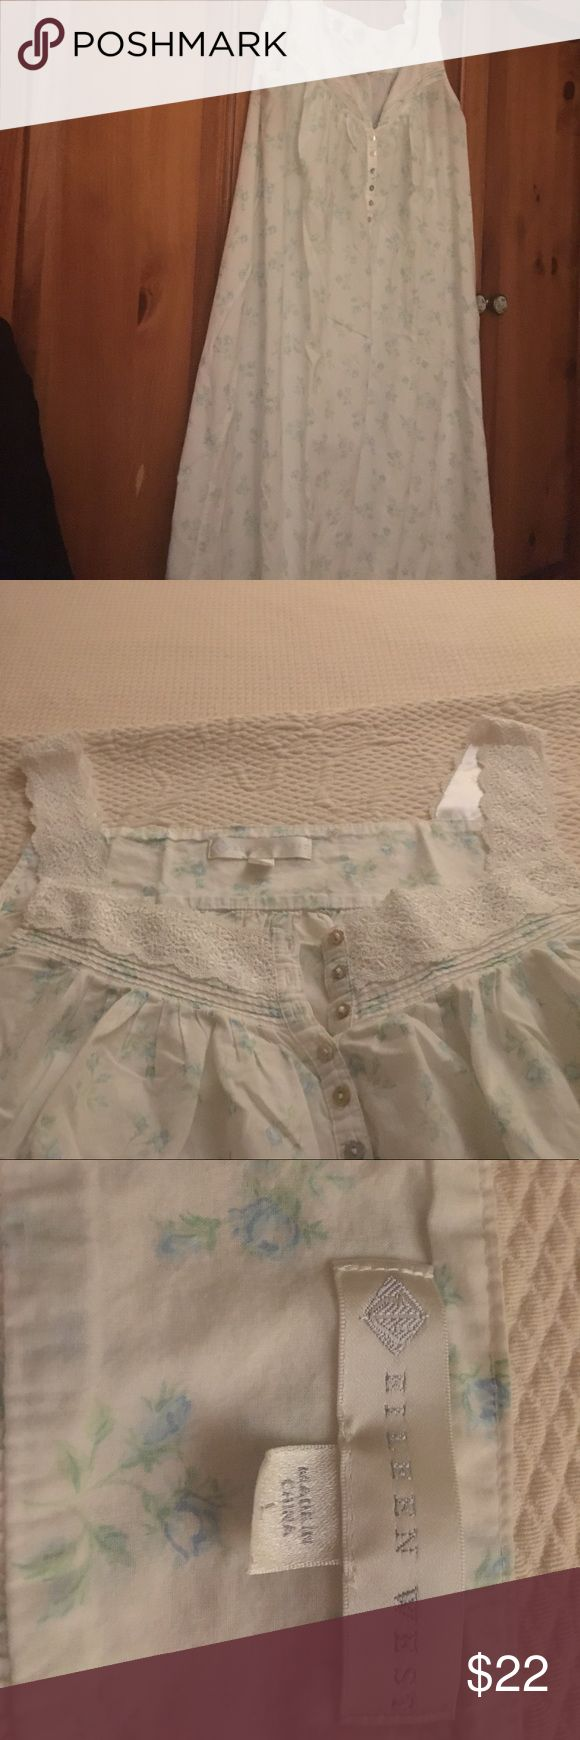 Eileen West long cotton nightgown. Size L Eileen West long cotton nightgown. Very fine soft cotton with pretty lace trim at neckline and shoulder straps. Delicate pleated trim at hemline. Aqua-color rosebuds on white background. Excellent condition. Intimates & Sleepwear Chemises & Slips